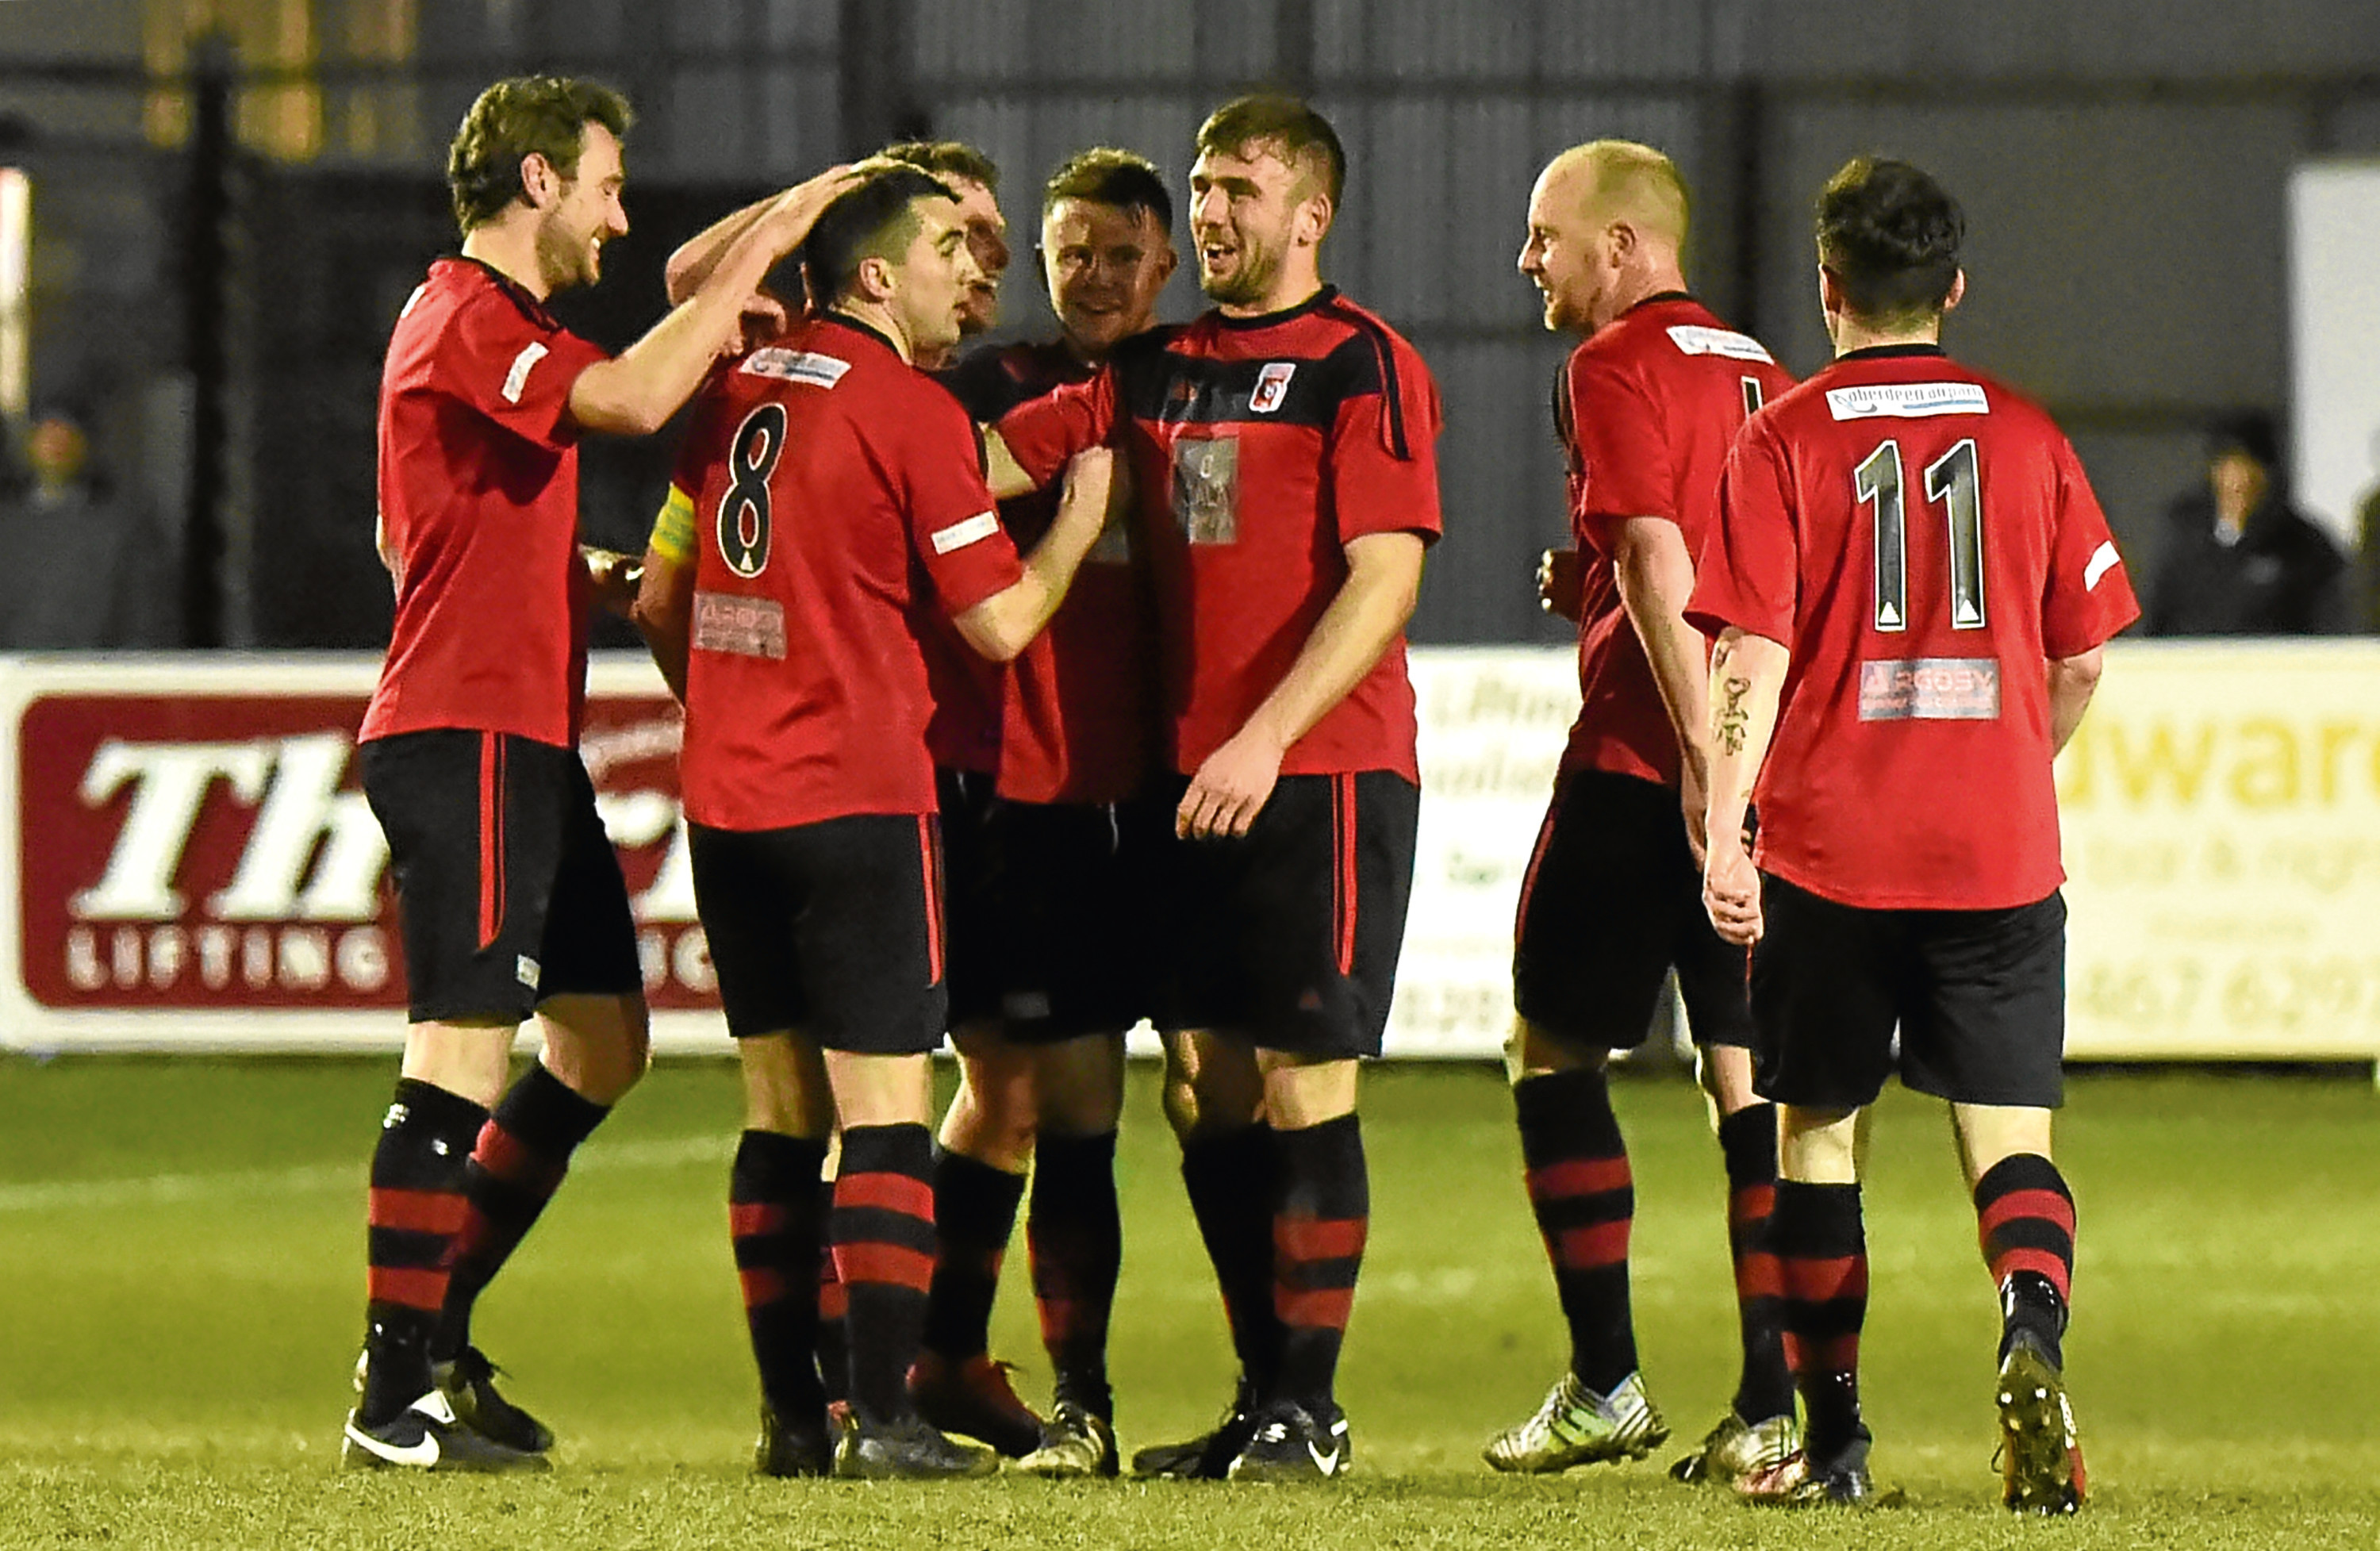 Neil McLean celebrating with team mates after scoring to make it 1-0.